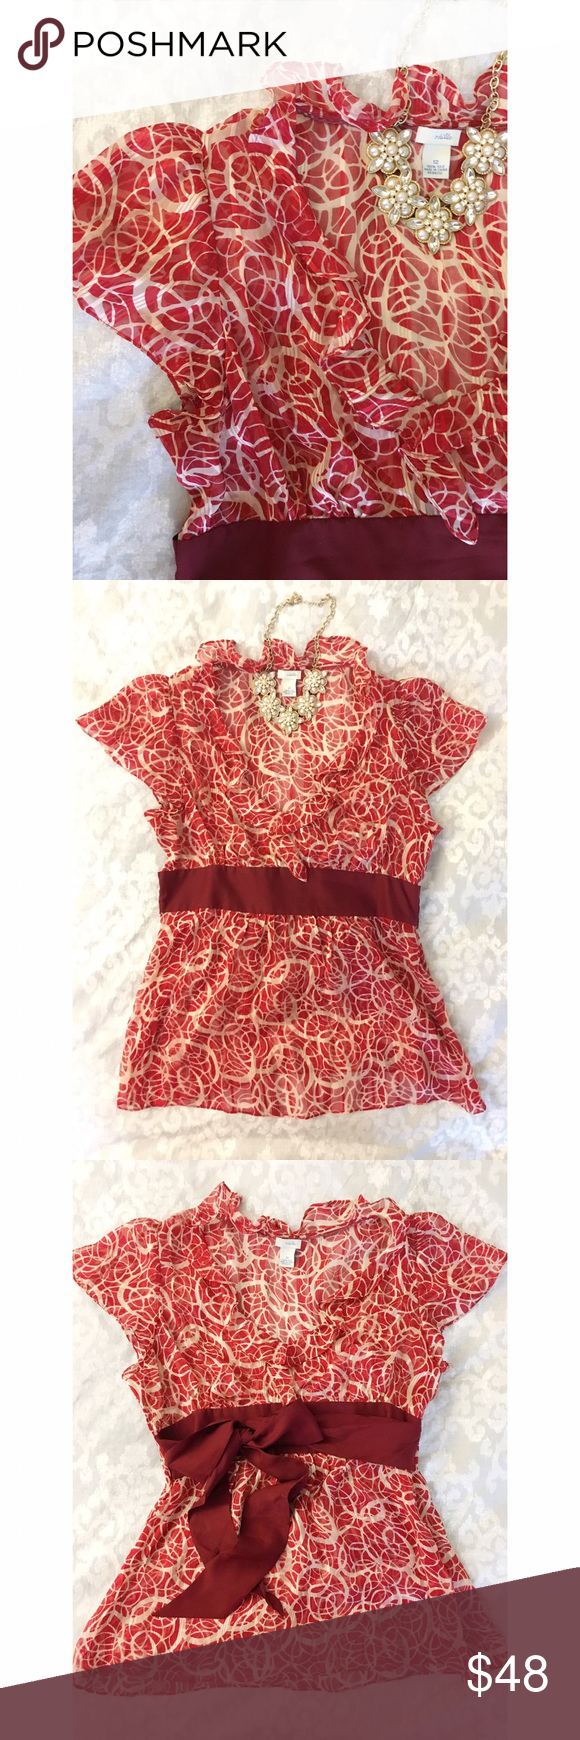 """Anthro Silk Ruffle Top ❤ A perfect top for Valentine's Day! ❤ This pretty feminine blouse has a flirty ruffled v-neck and dark red wide ribbon sash that can be tied in the front of the back. A size zip and romantic flutter sleeves add to this beauty's charm. Sheer and lightweight, this 100% silk Anthropologie 'Odille' top has only been worn once and is in great condition. Measures 27"""" from shoulder to hem. Size 12. ❤ Anthropologie Tops Blouses"""